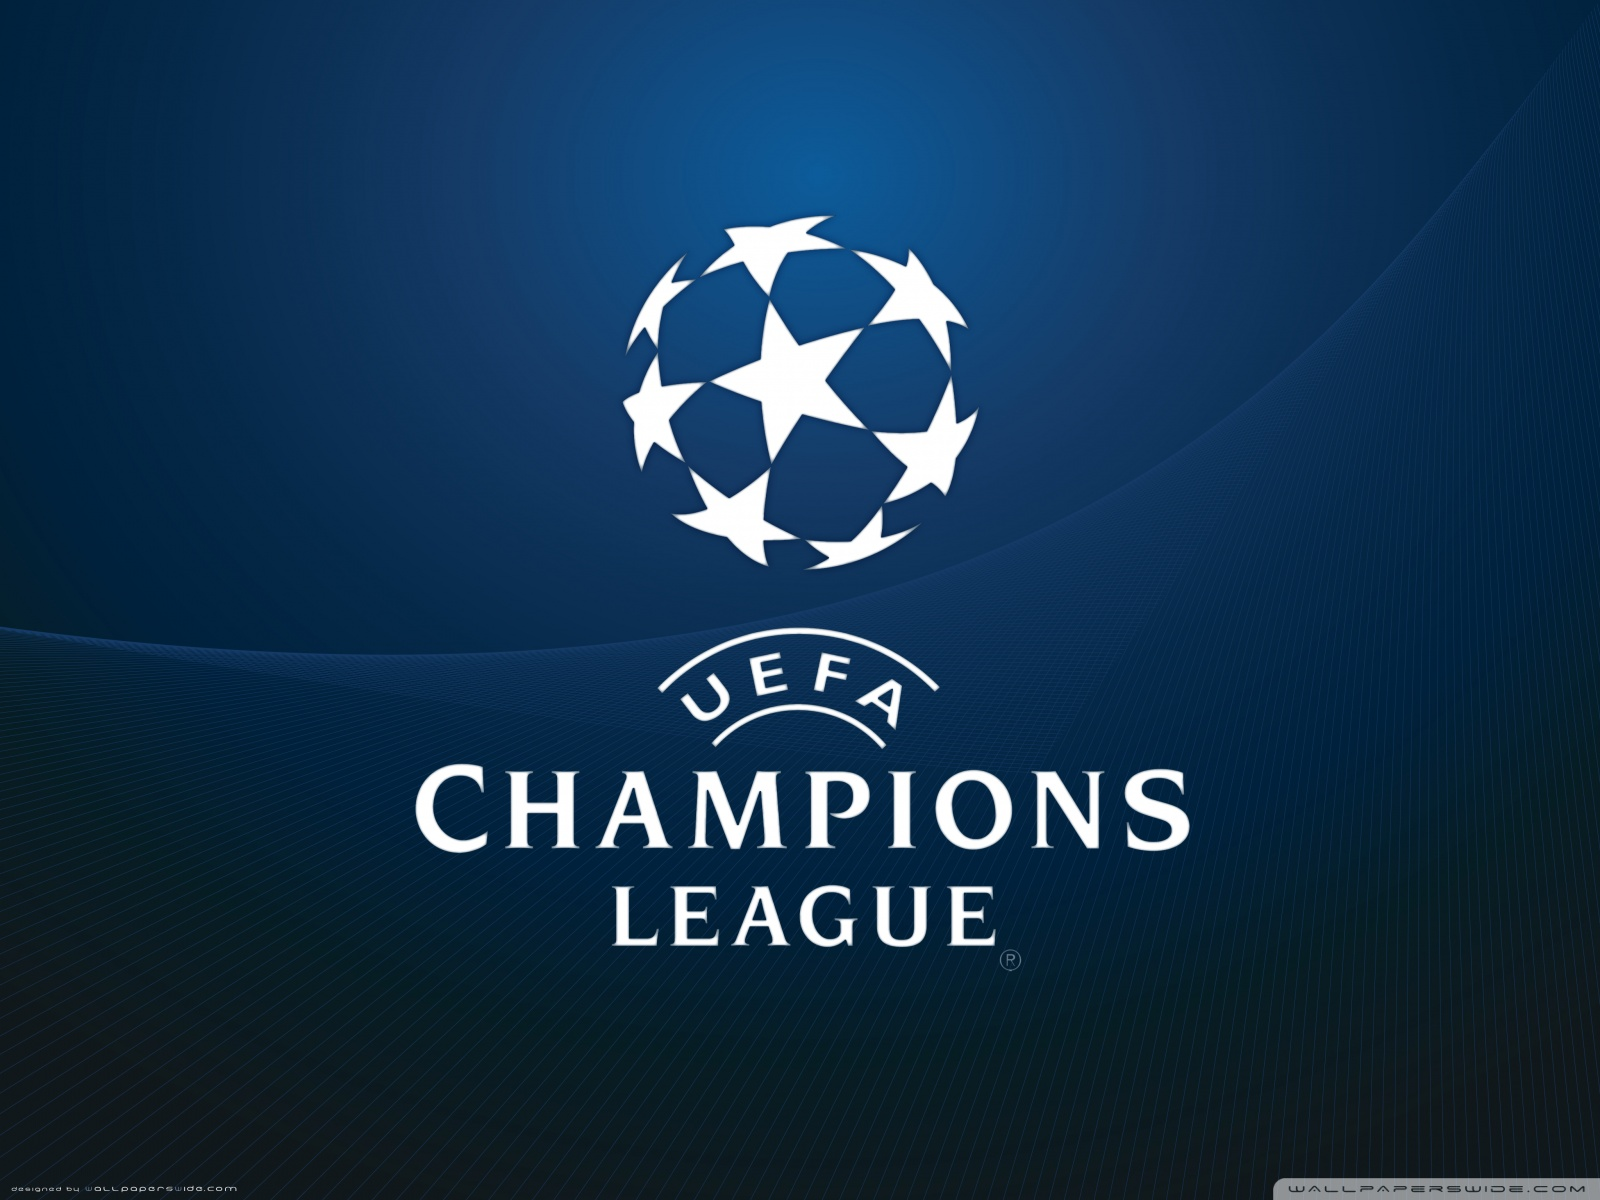 Uefa Champions League wallpaper champions league Wallpapereorg 1600x1200